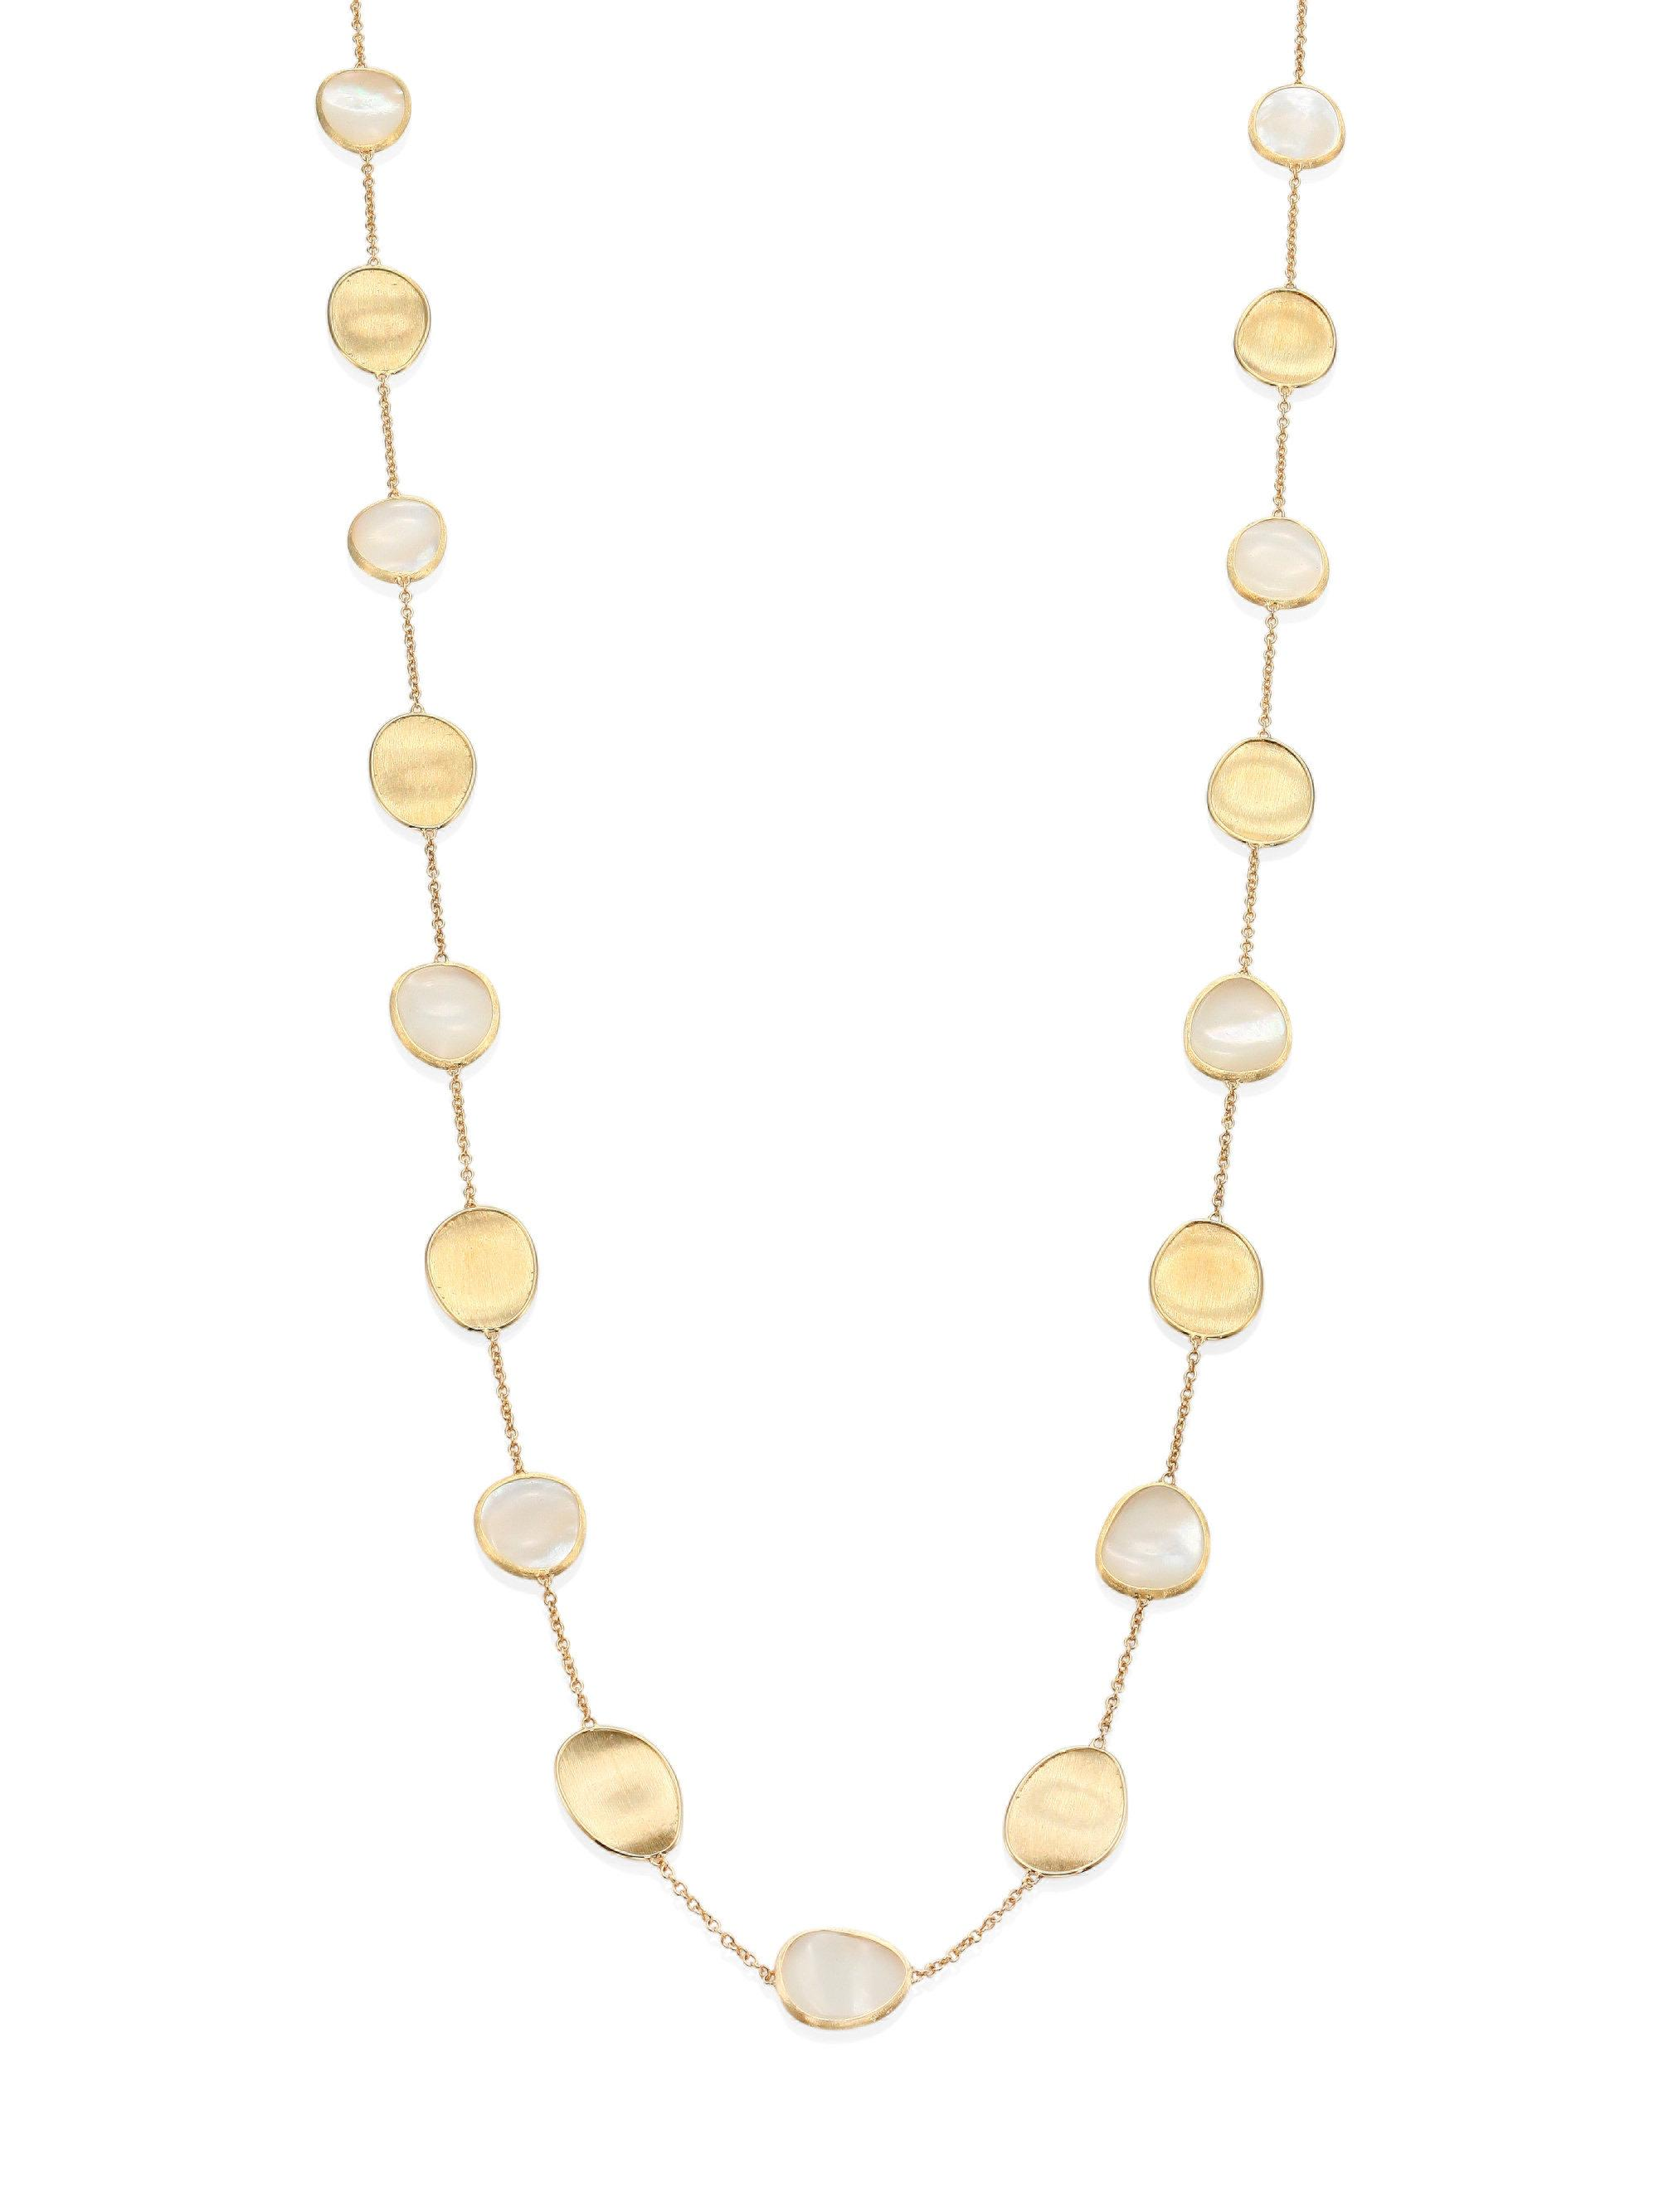 Marco Bicego Lunaria Long Mother-of-Pearl Station Necklace, 36